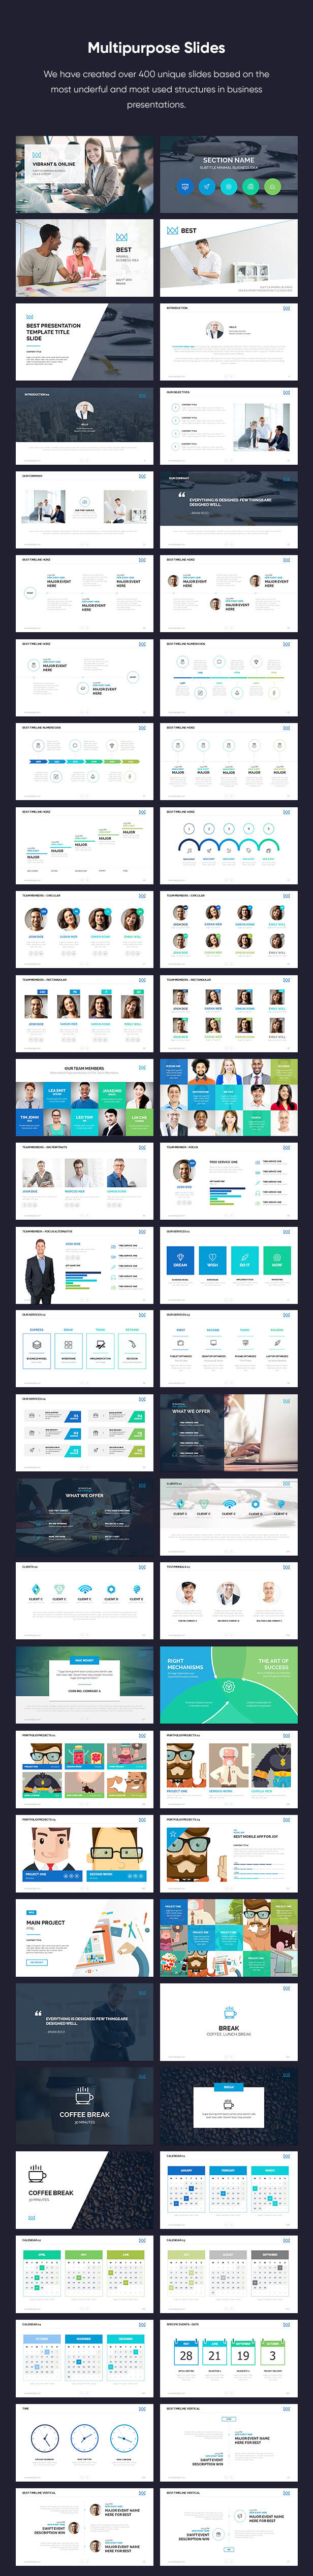 Business PowerPoint Presentation Template - 5